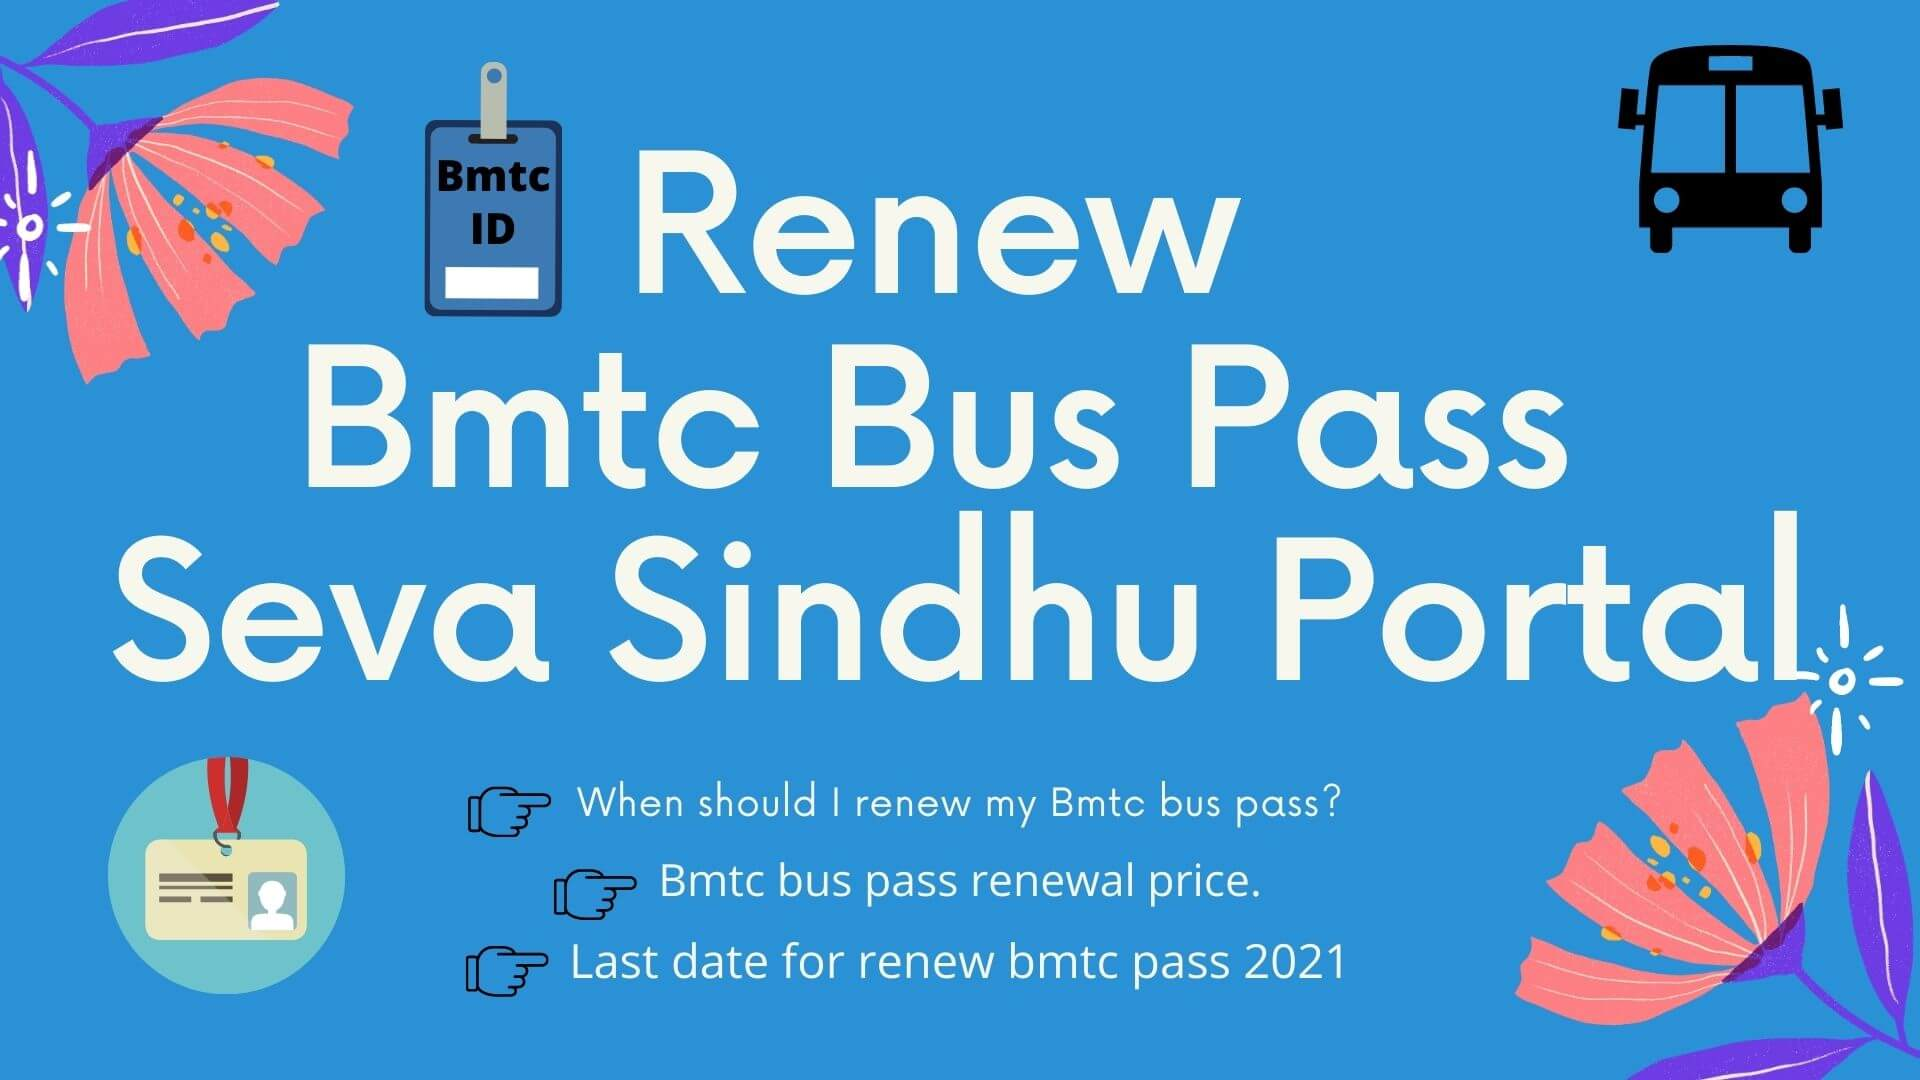 Renew Bmtc bus pass through Seva Sindhu portal 2021